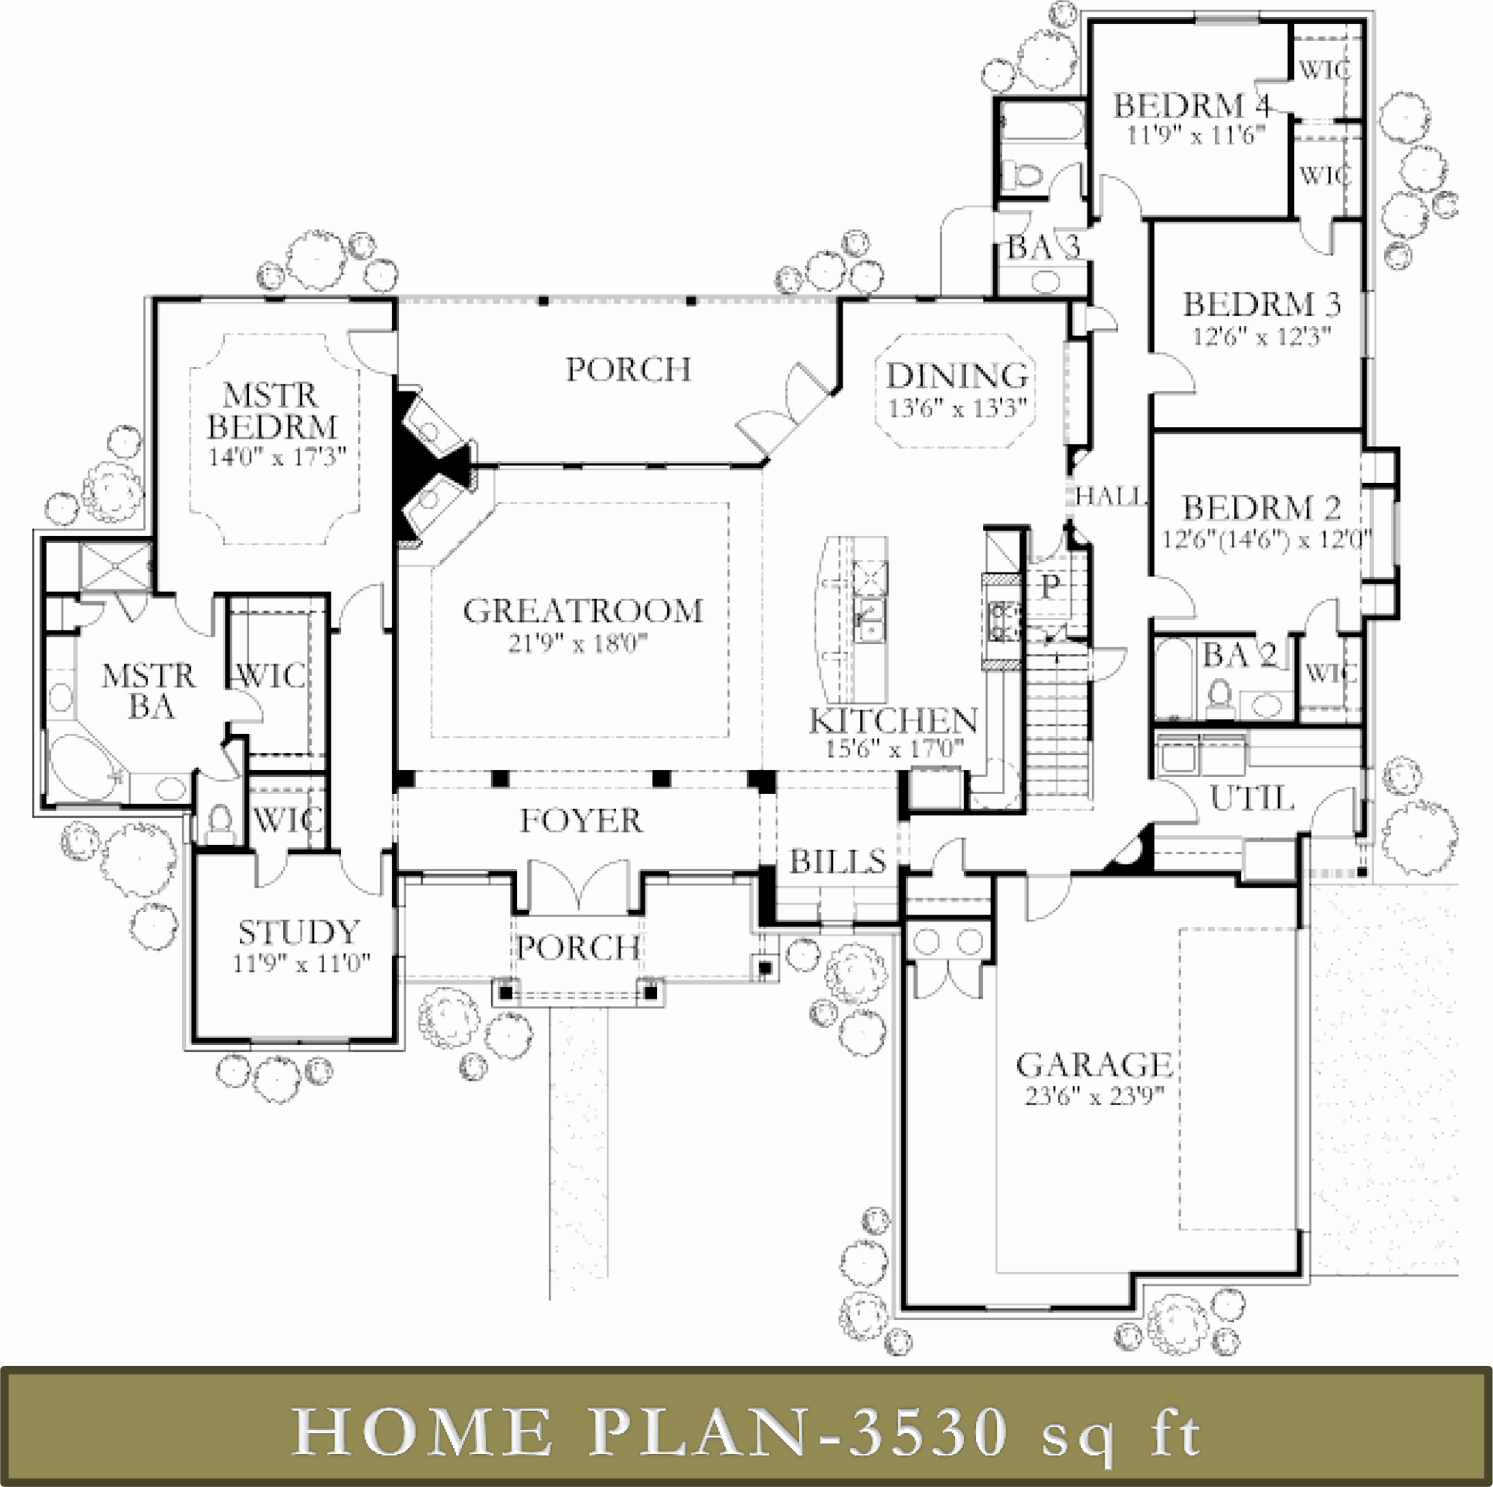 Cool Cumberland Harbor Cottage House Plan Country Farmhouse Southern In Two Story Style Plans furthermore Gallery Of Homes together with Slope likewise 4 Car Garage House Plans besides 30936. on simple ranch floor plans